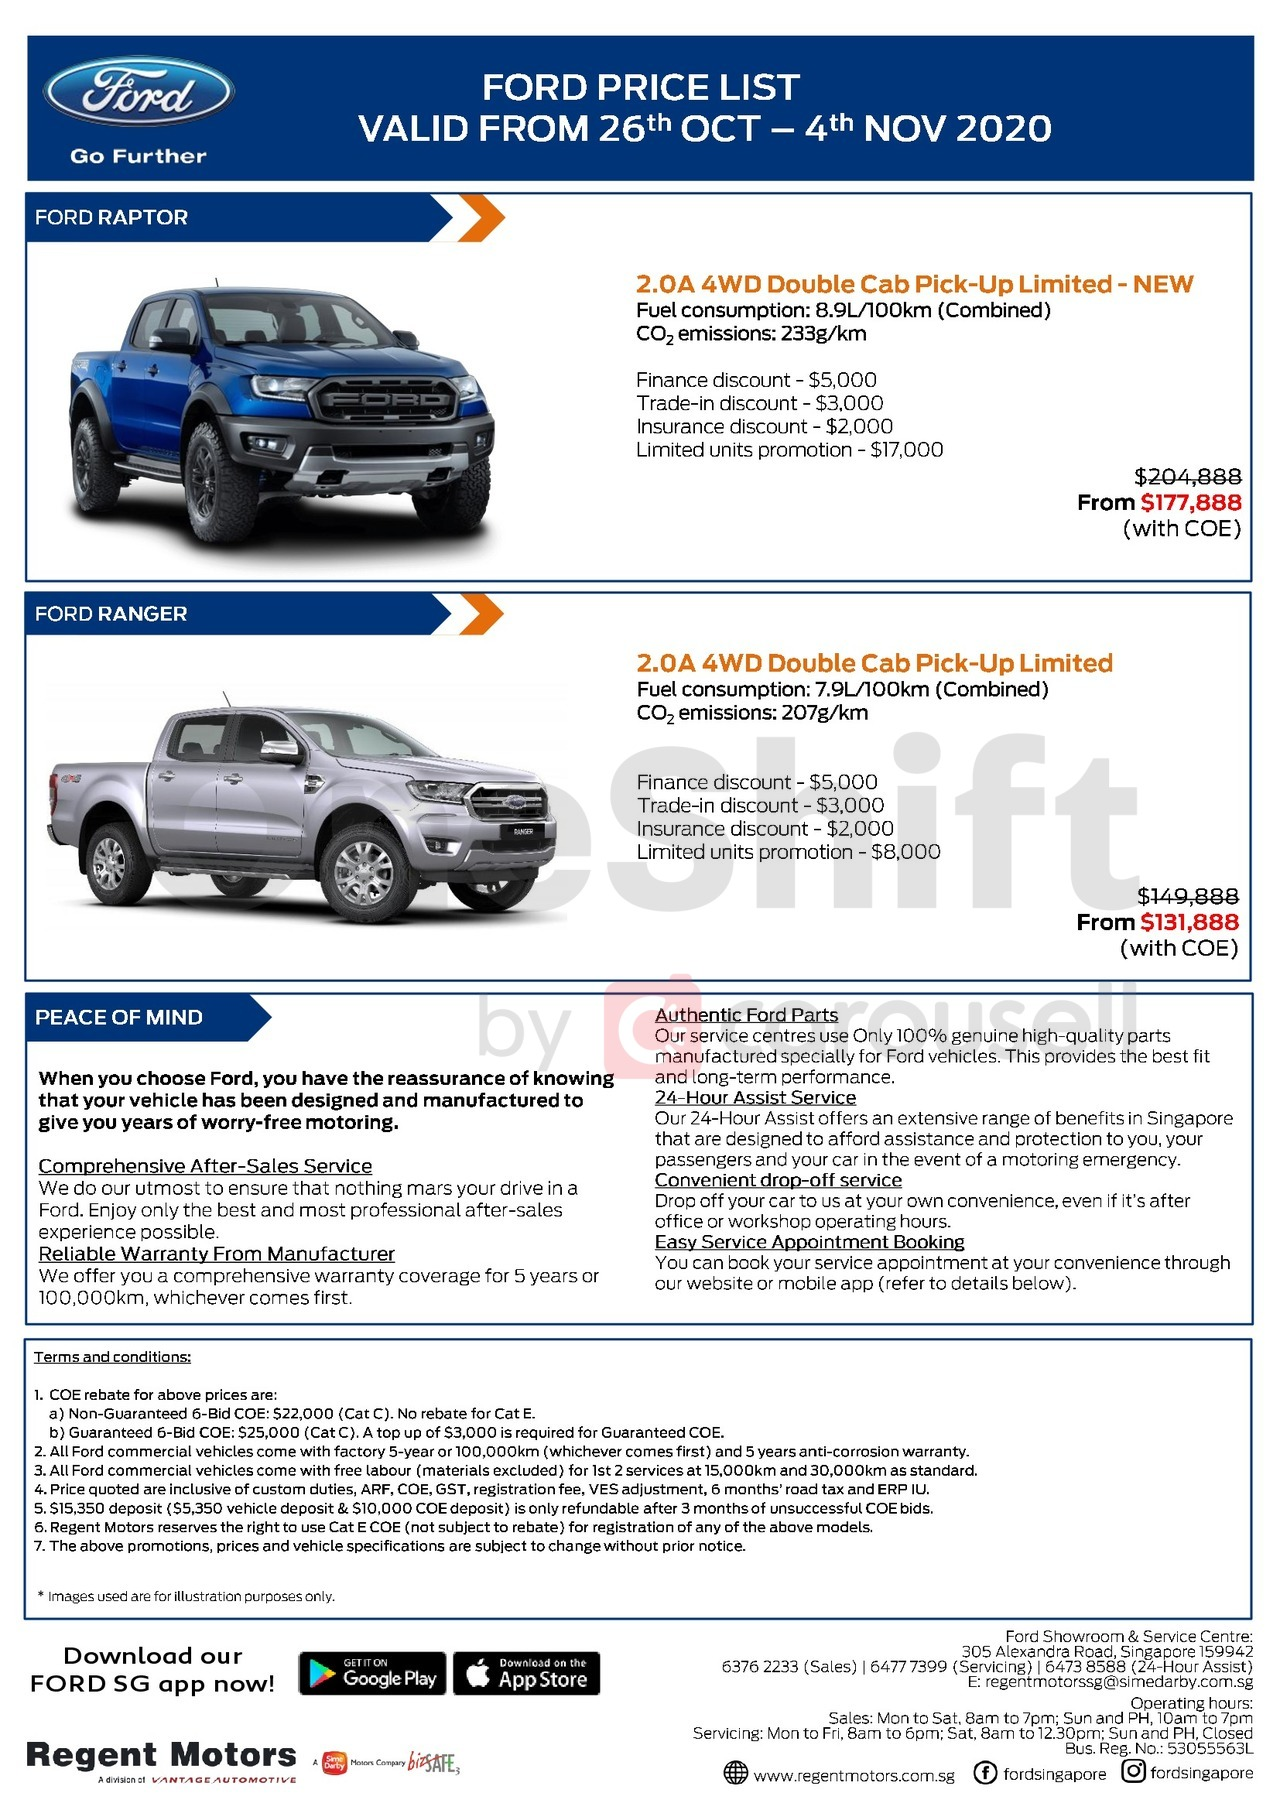 ford Price List 10-26-2020 Page 1